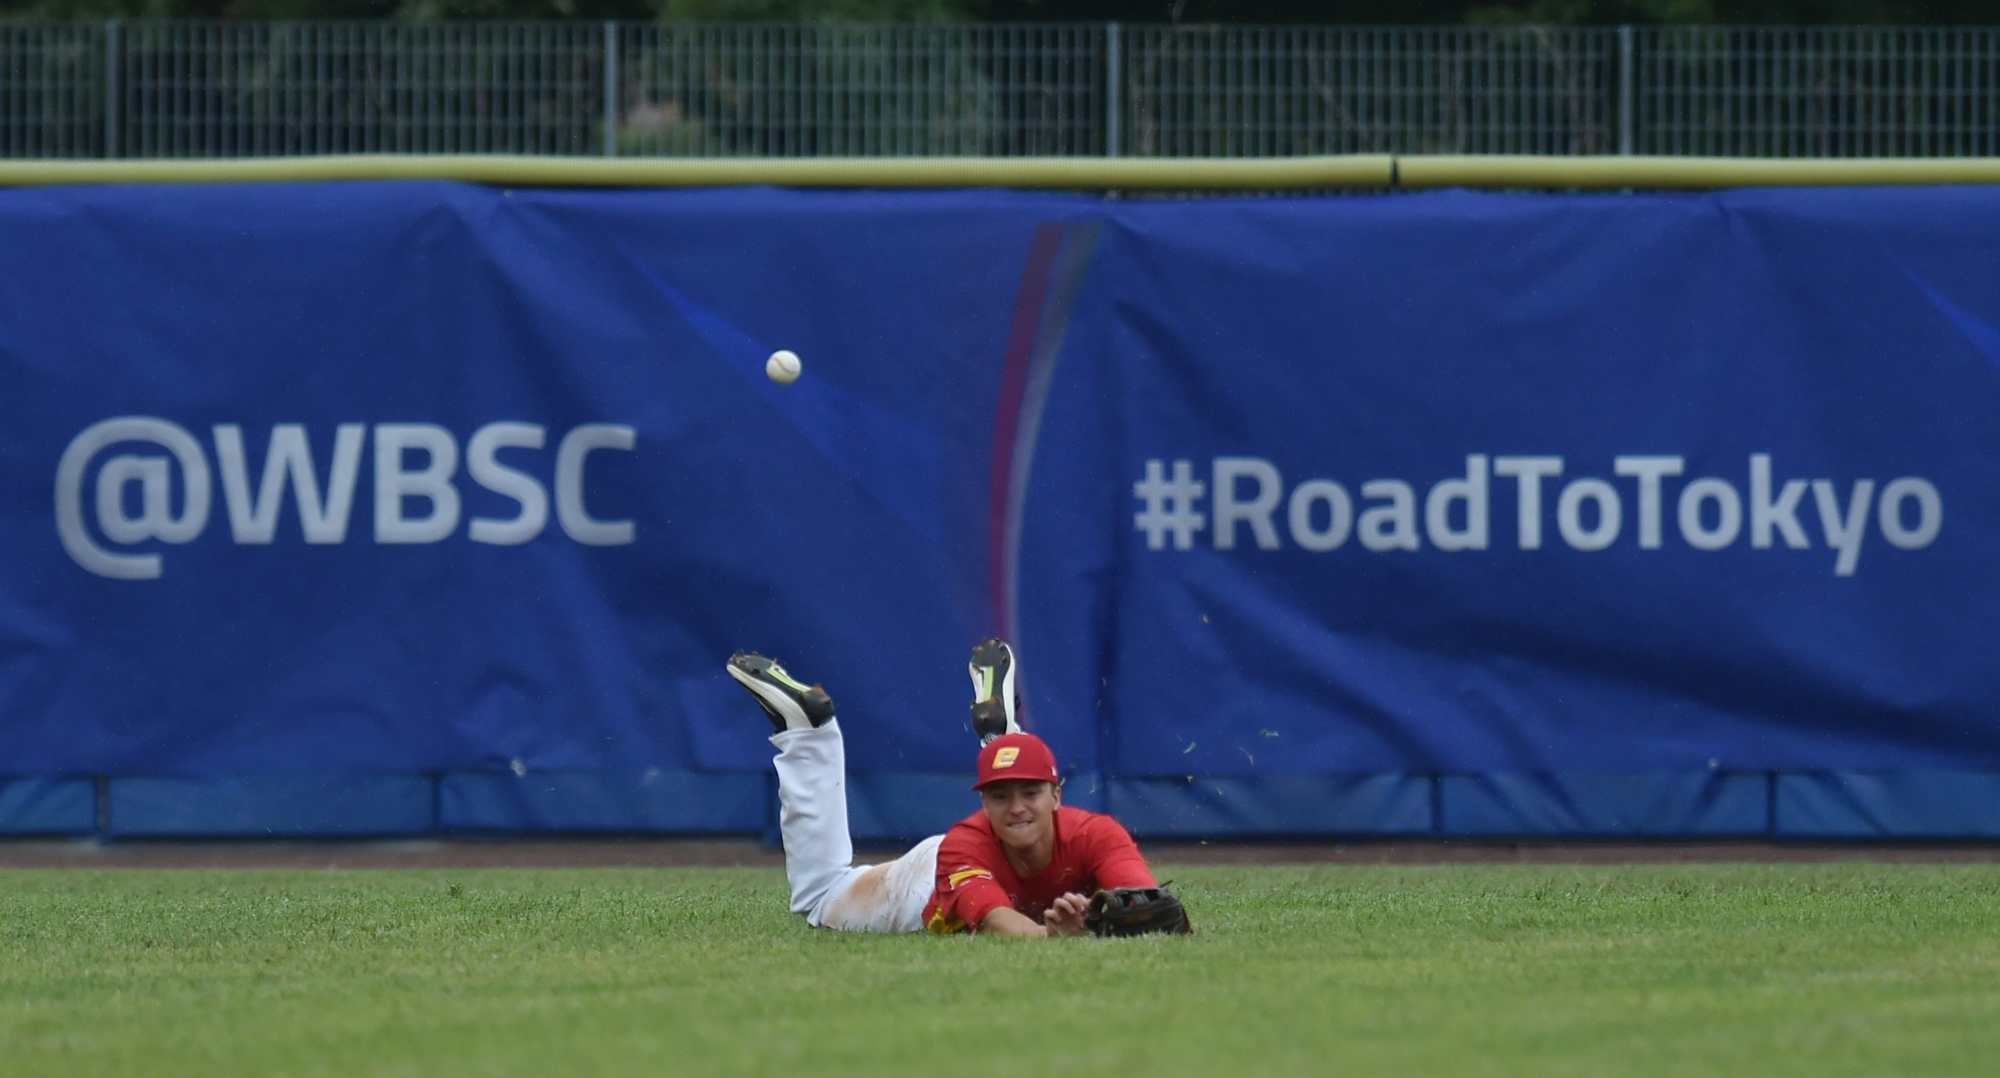 Johnny Bethencourt attempts a diving catch